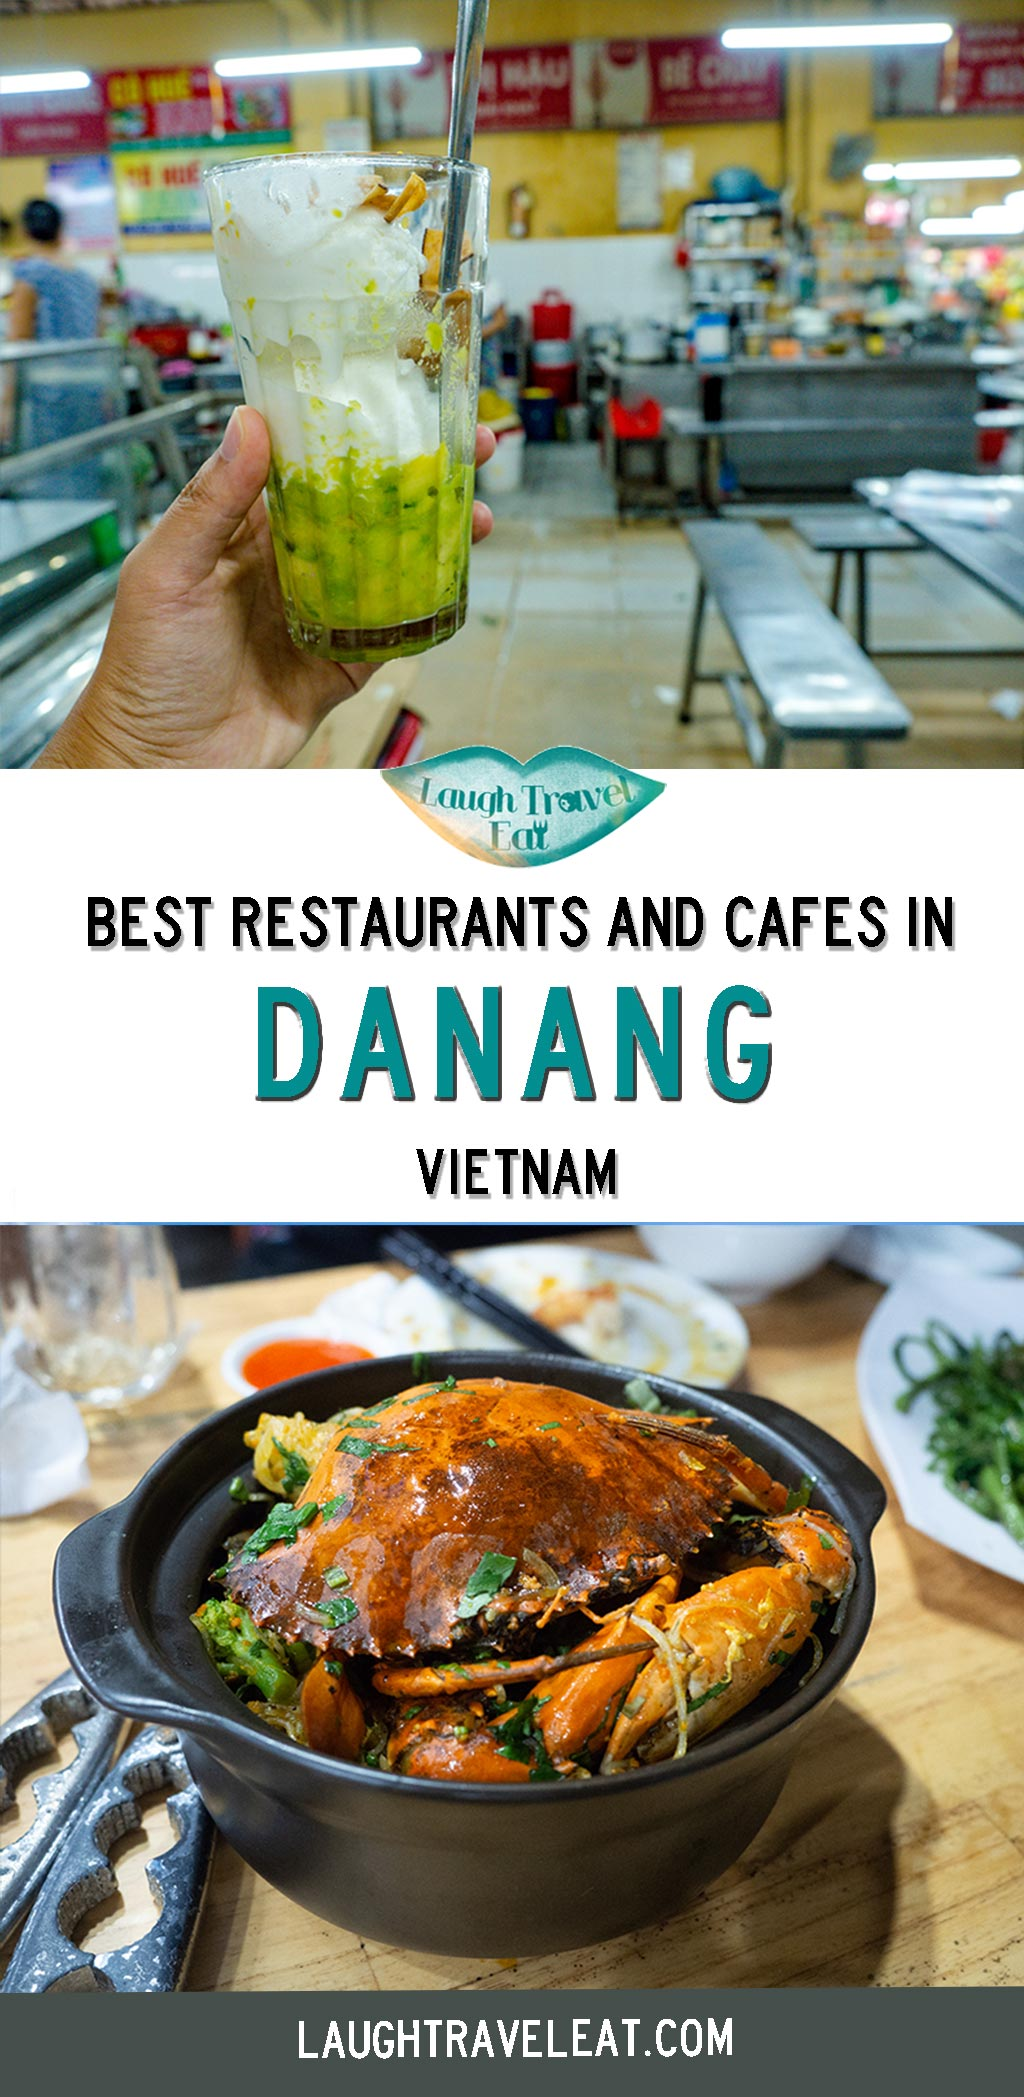 As one of the biggest cities in central Vietnam, it's no question that there are plenty of restaurants and cuisine to try in Da nang. What I love about it is that not only does it have cool, modern international restaurants but you can still find cheaper-than-cheap local and street food. Here are some of my top picks: #Danang #Vietnam #Food